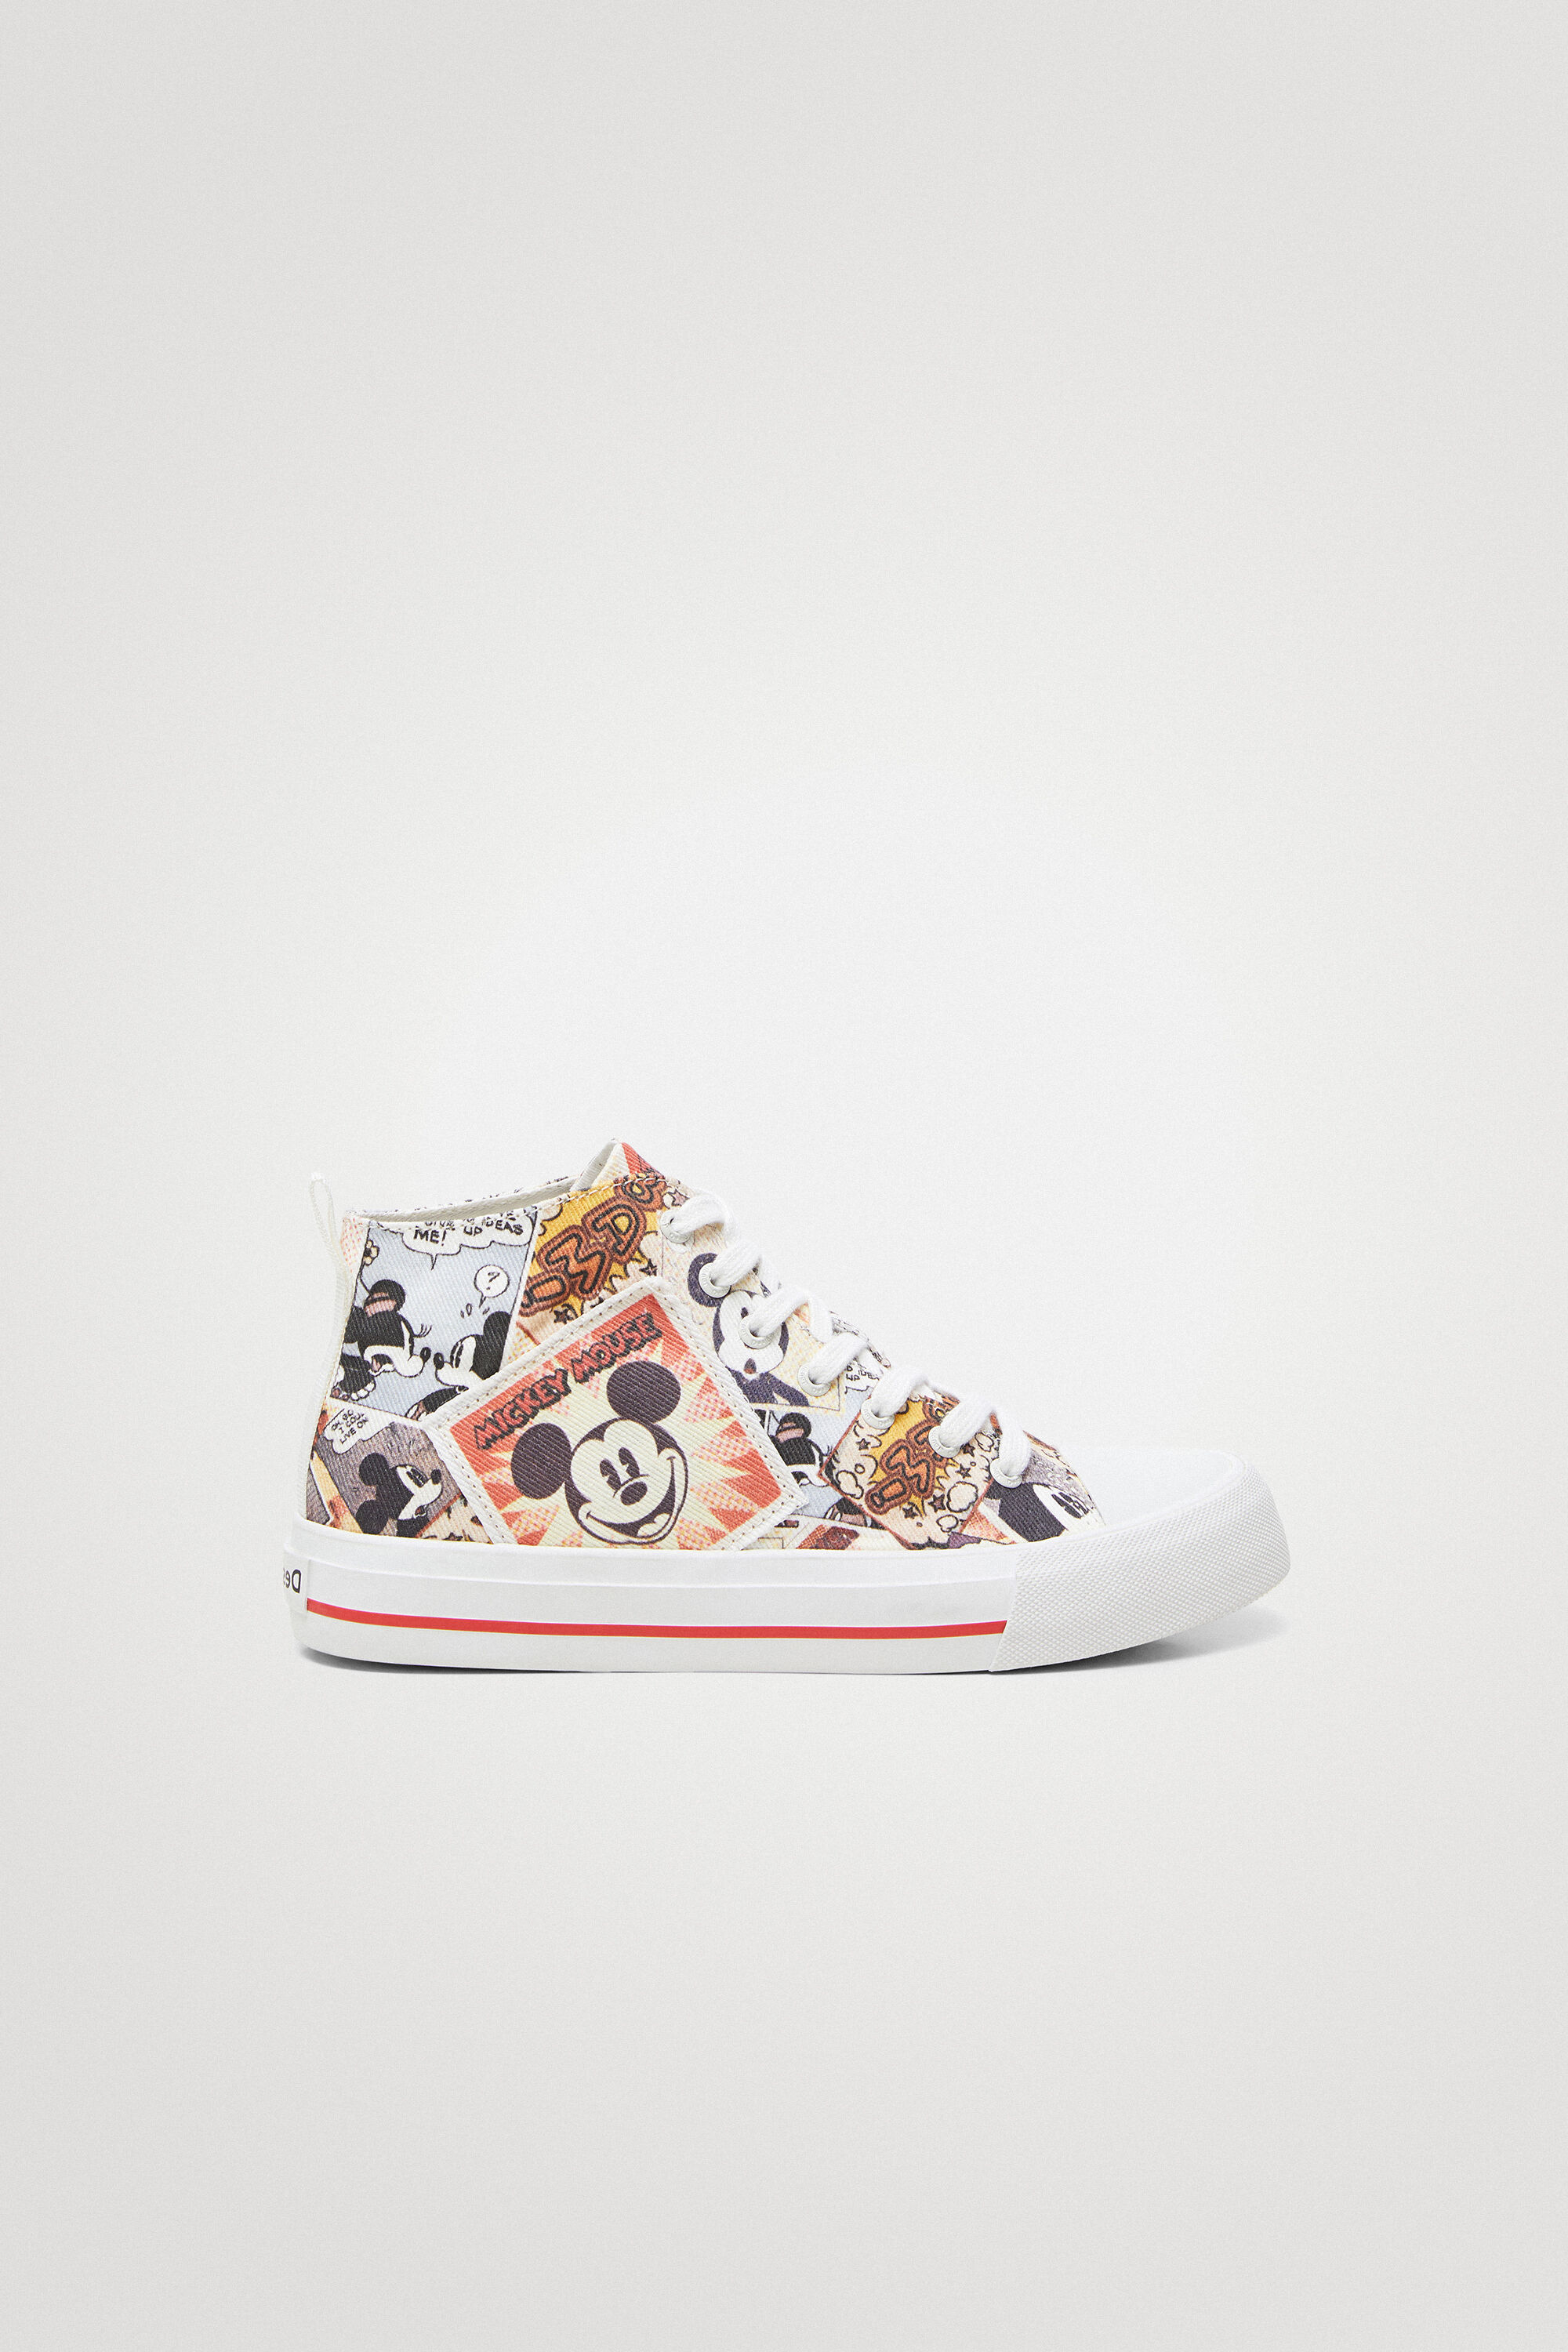 Mickey Mouse high-top sneakers - MATERIAL FINISHES - 41